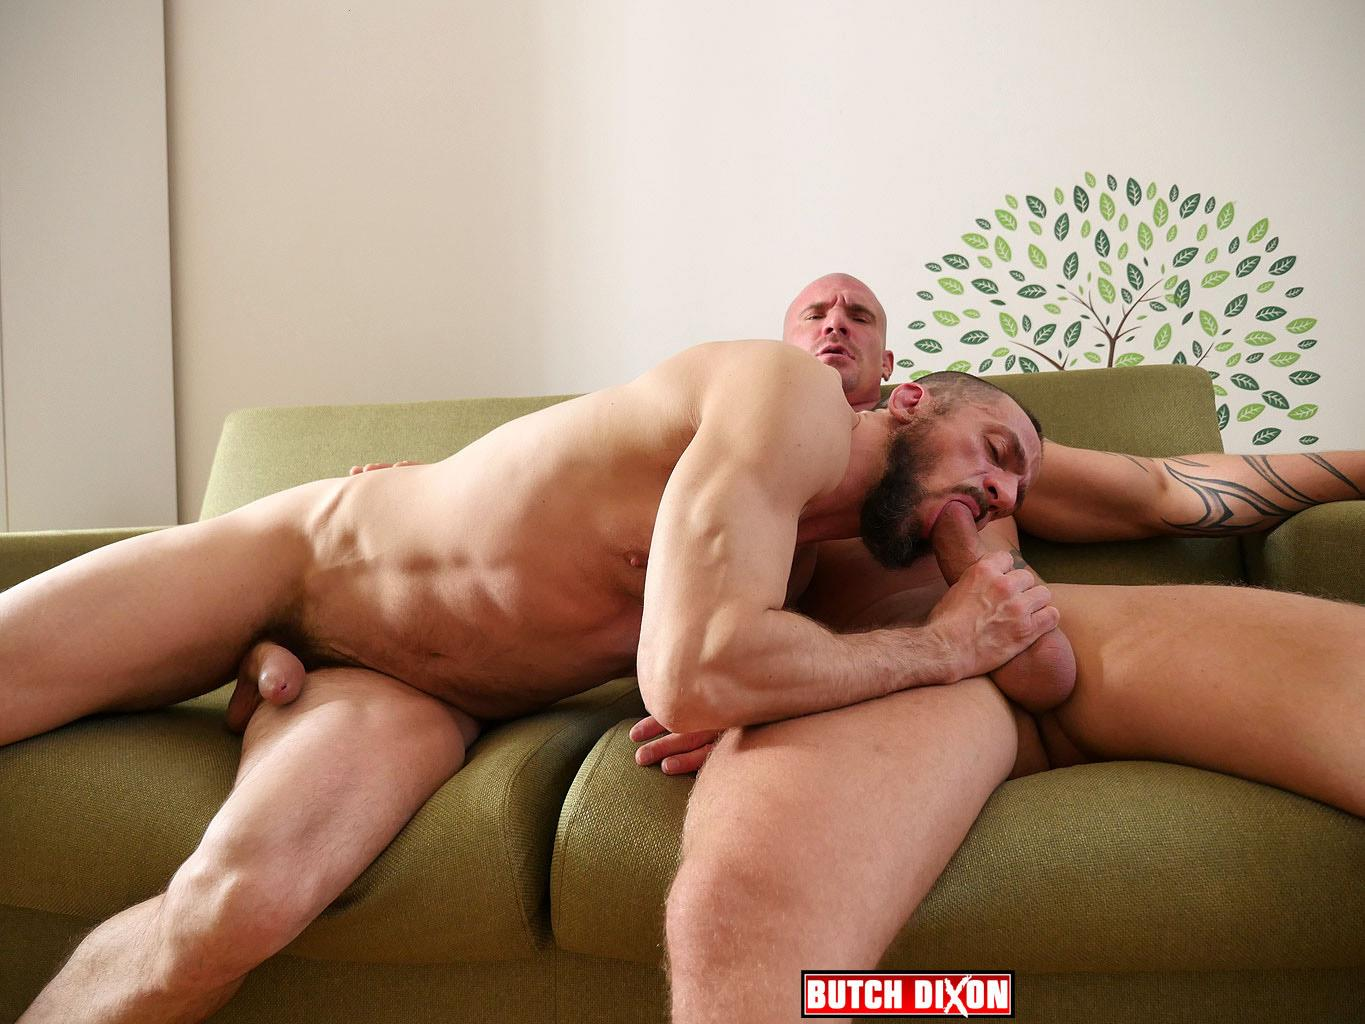 Butch Dixon Erik Lenn and Mike Bourne Masculine Guys Fucking Bareback Amateur Gay Porn 11 Beefy Masculine Guys Fucking Bareback With A Big Uncut Cock